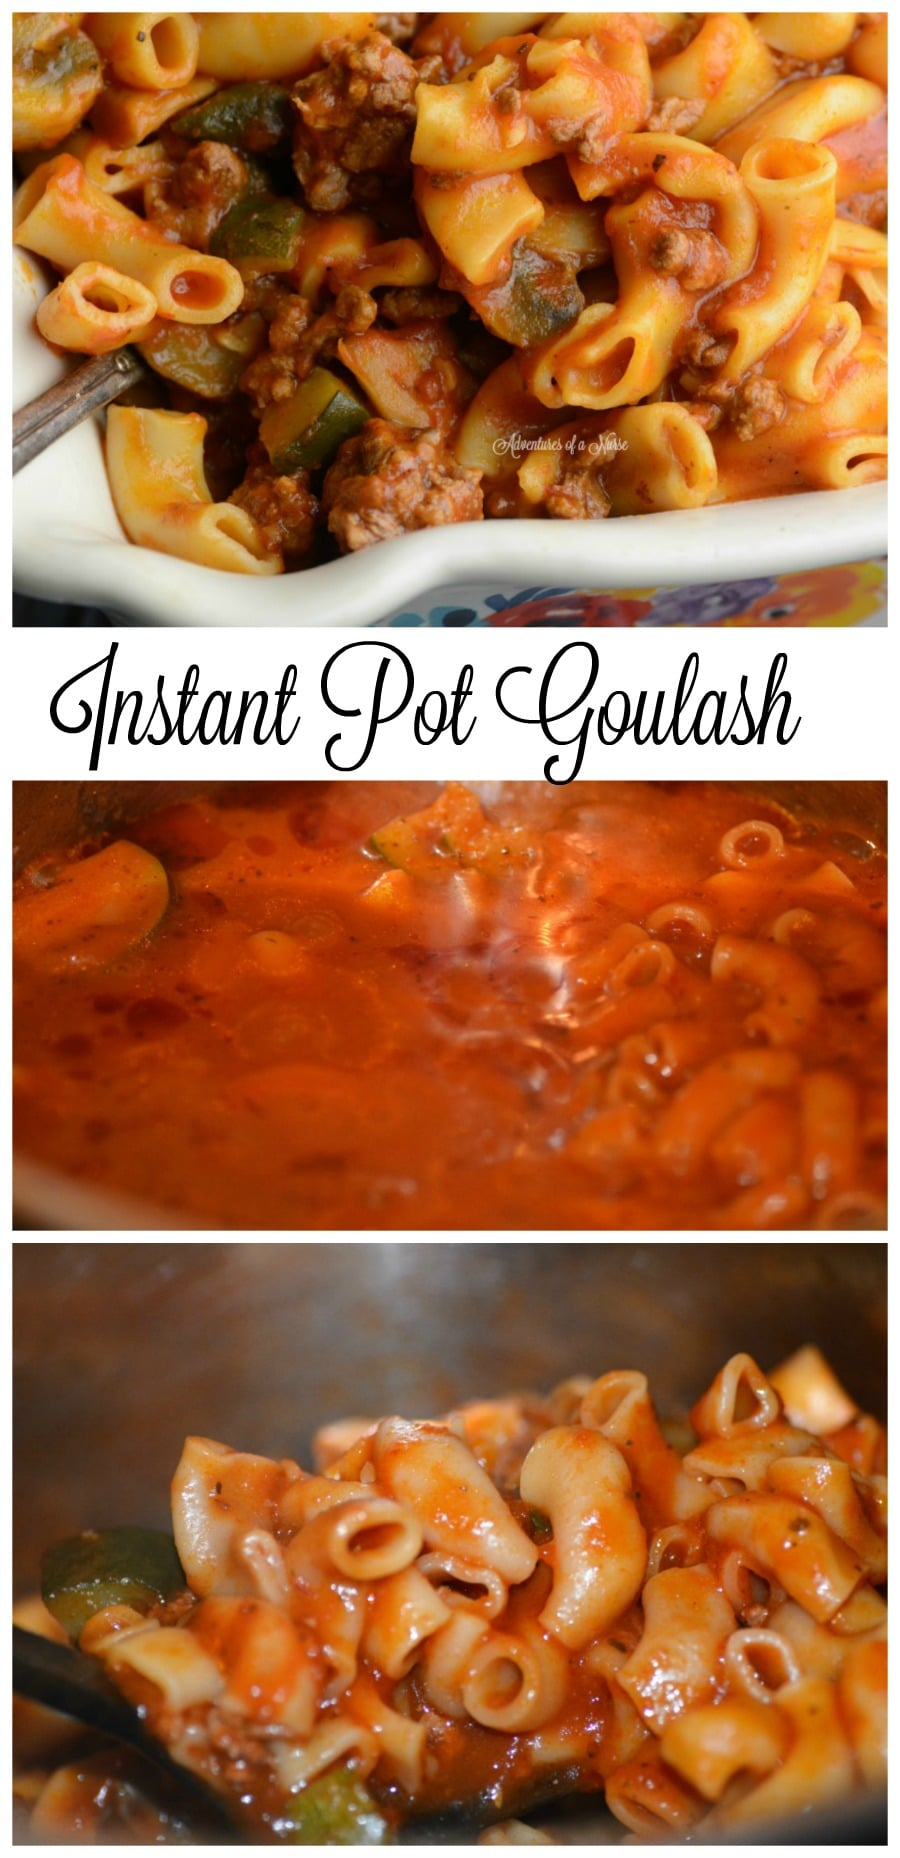 Instant Pot Goulash 4 Minute Meal